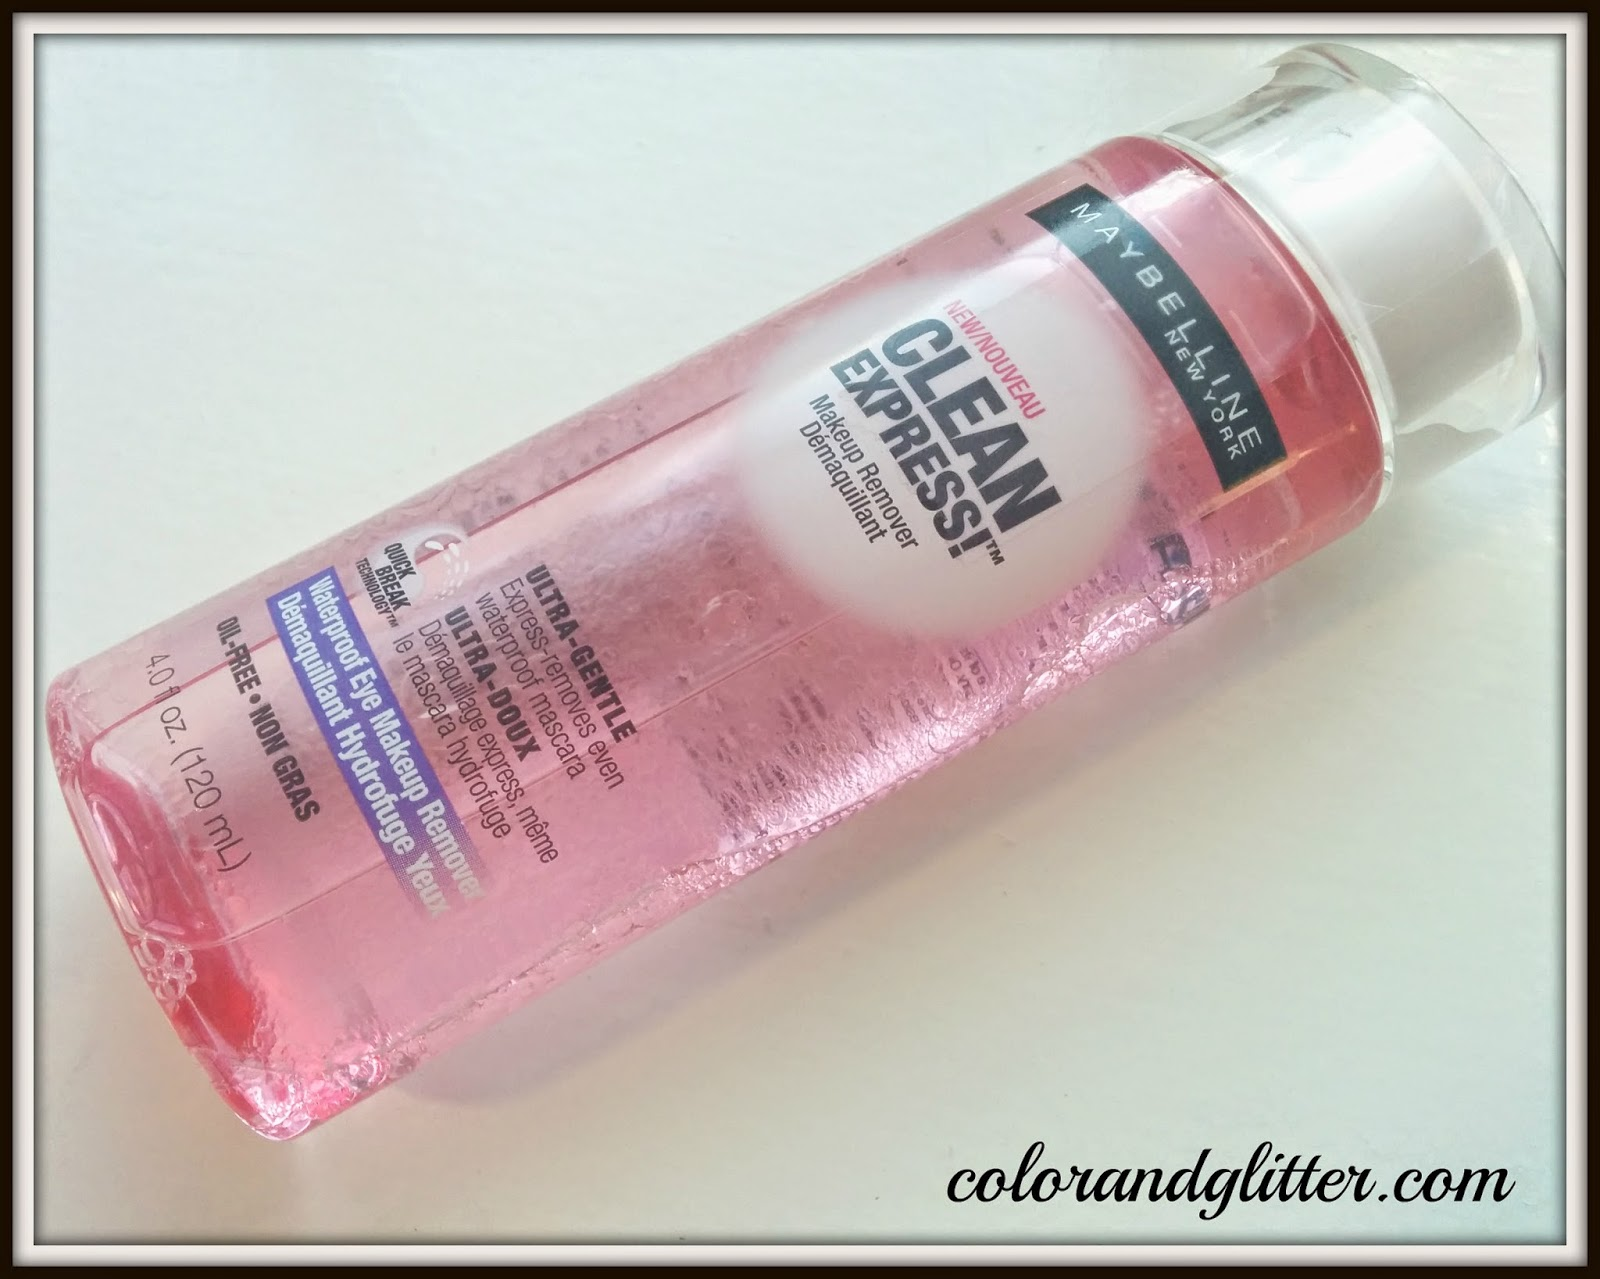 Maybelline waterproof eye makeup remover